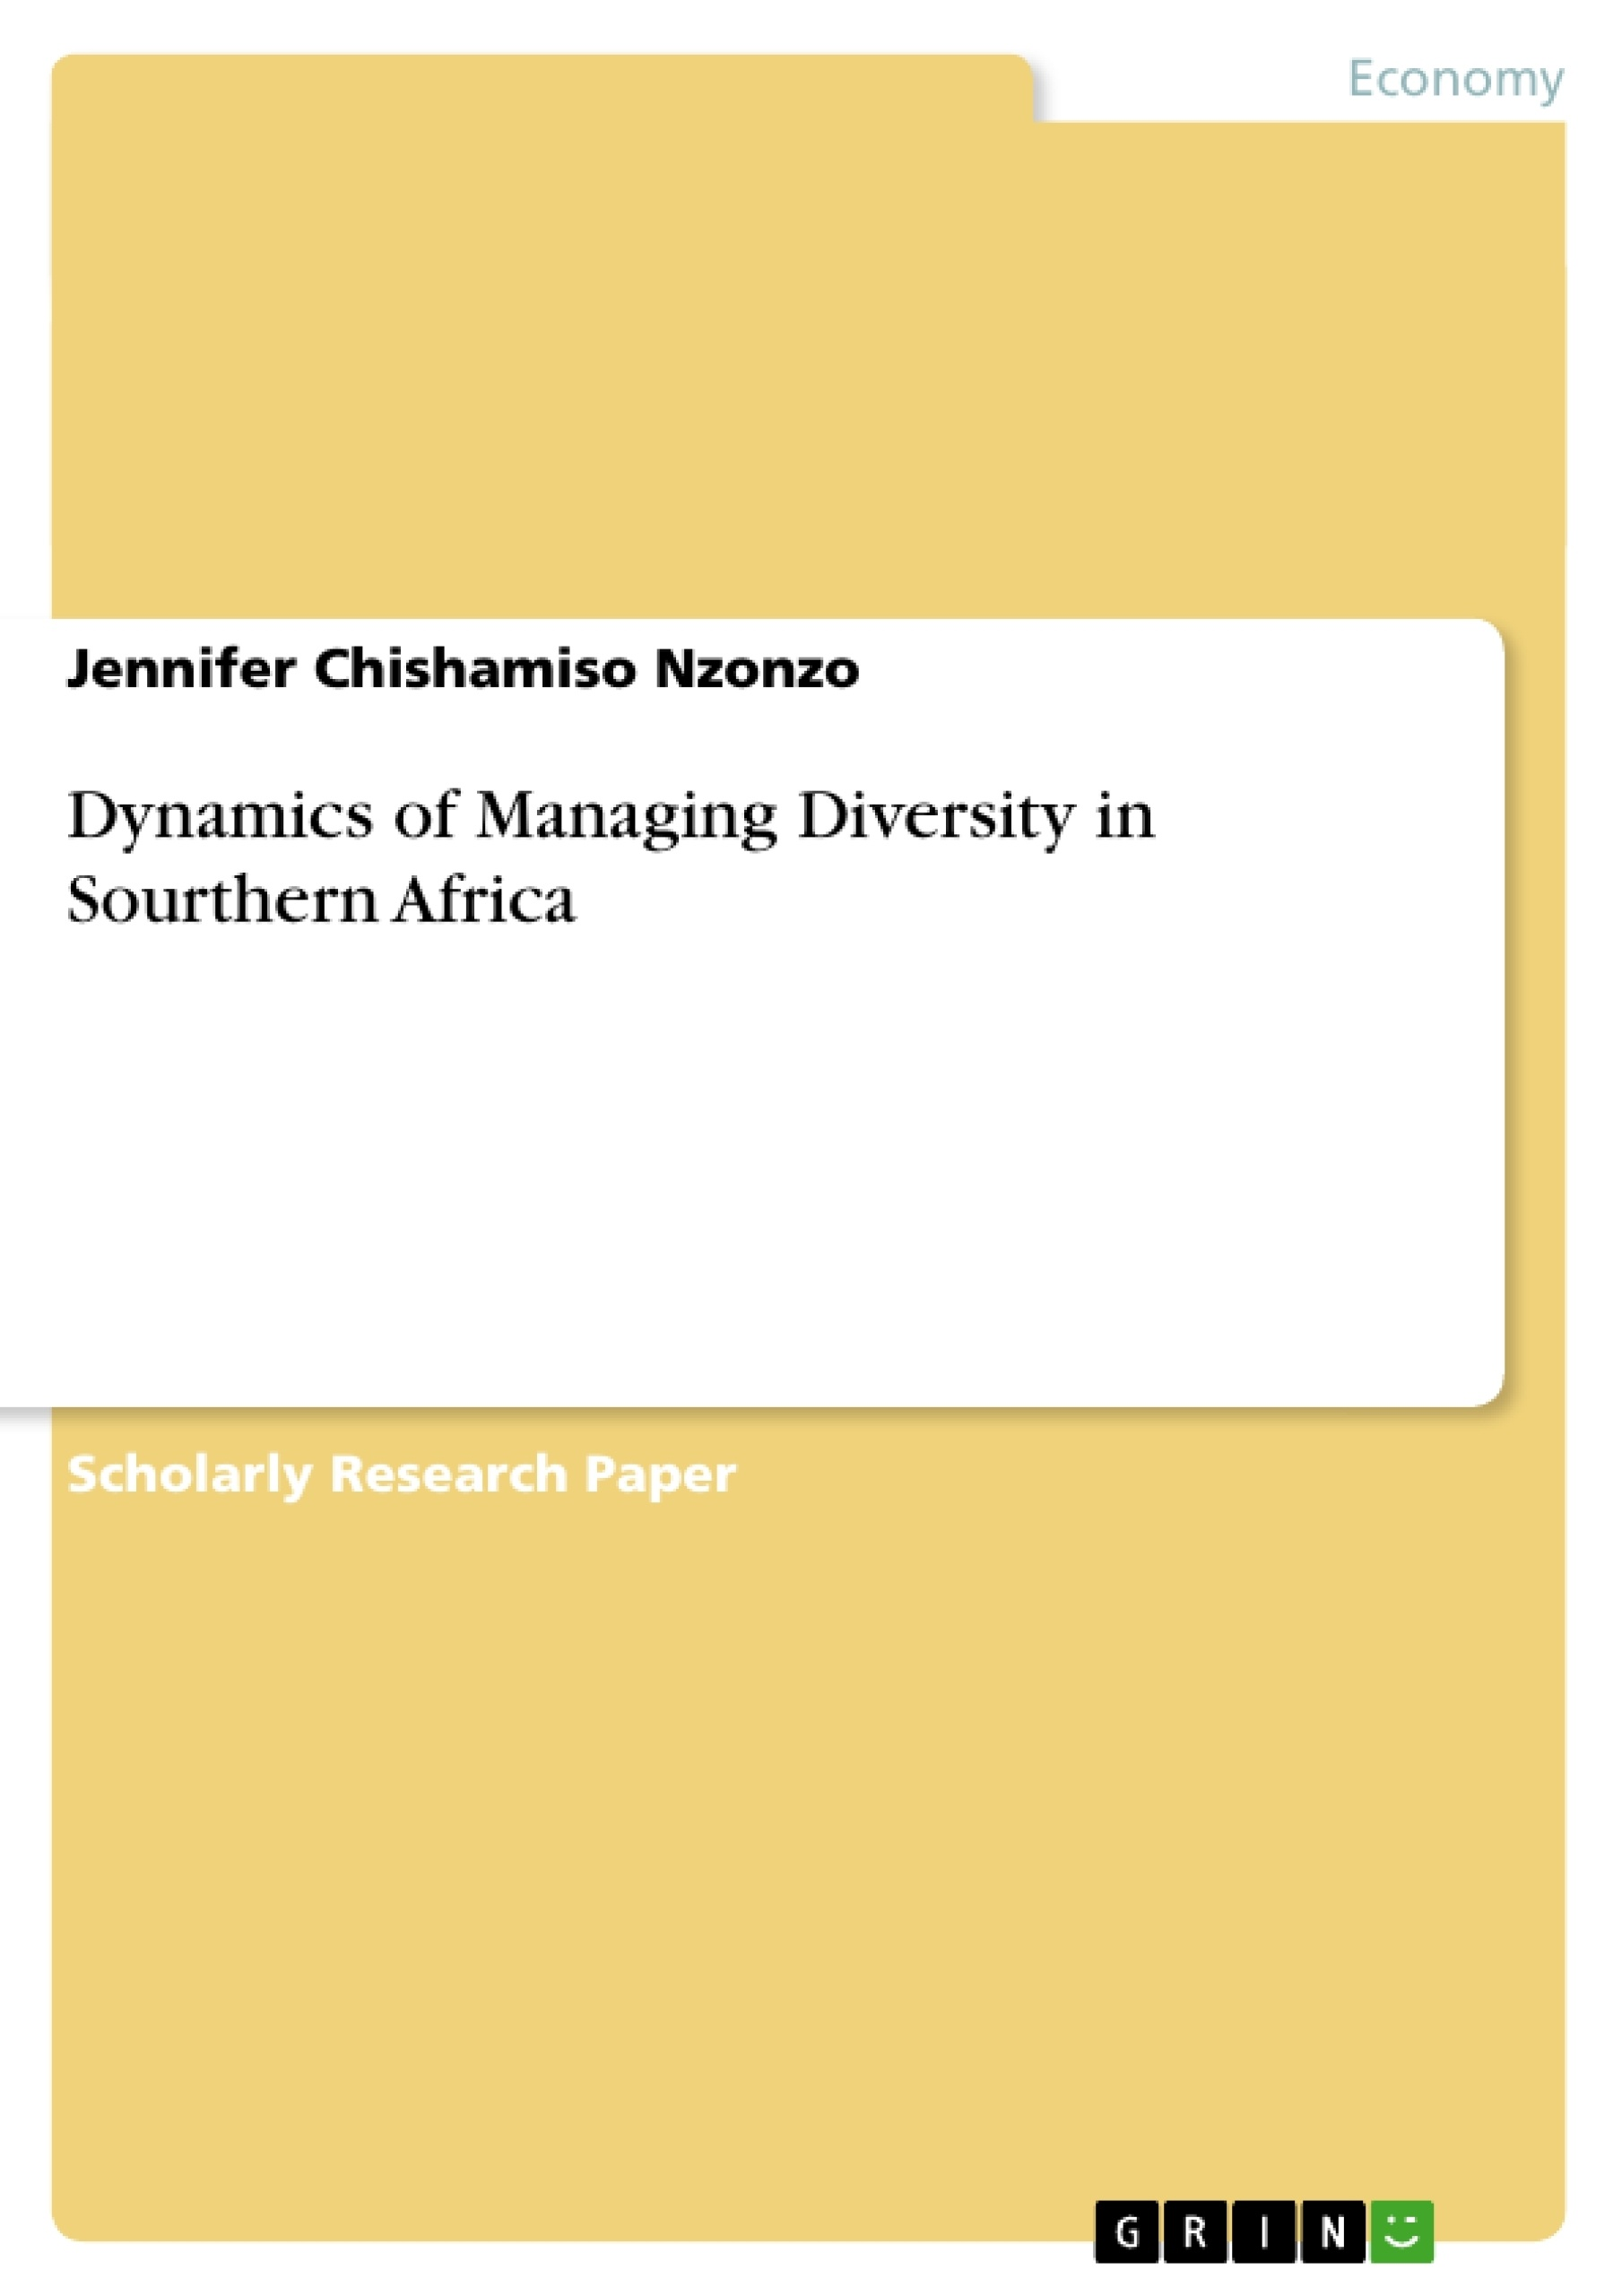 Title: Dynamics of Managing Diversity in Sourthern Africa